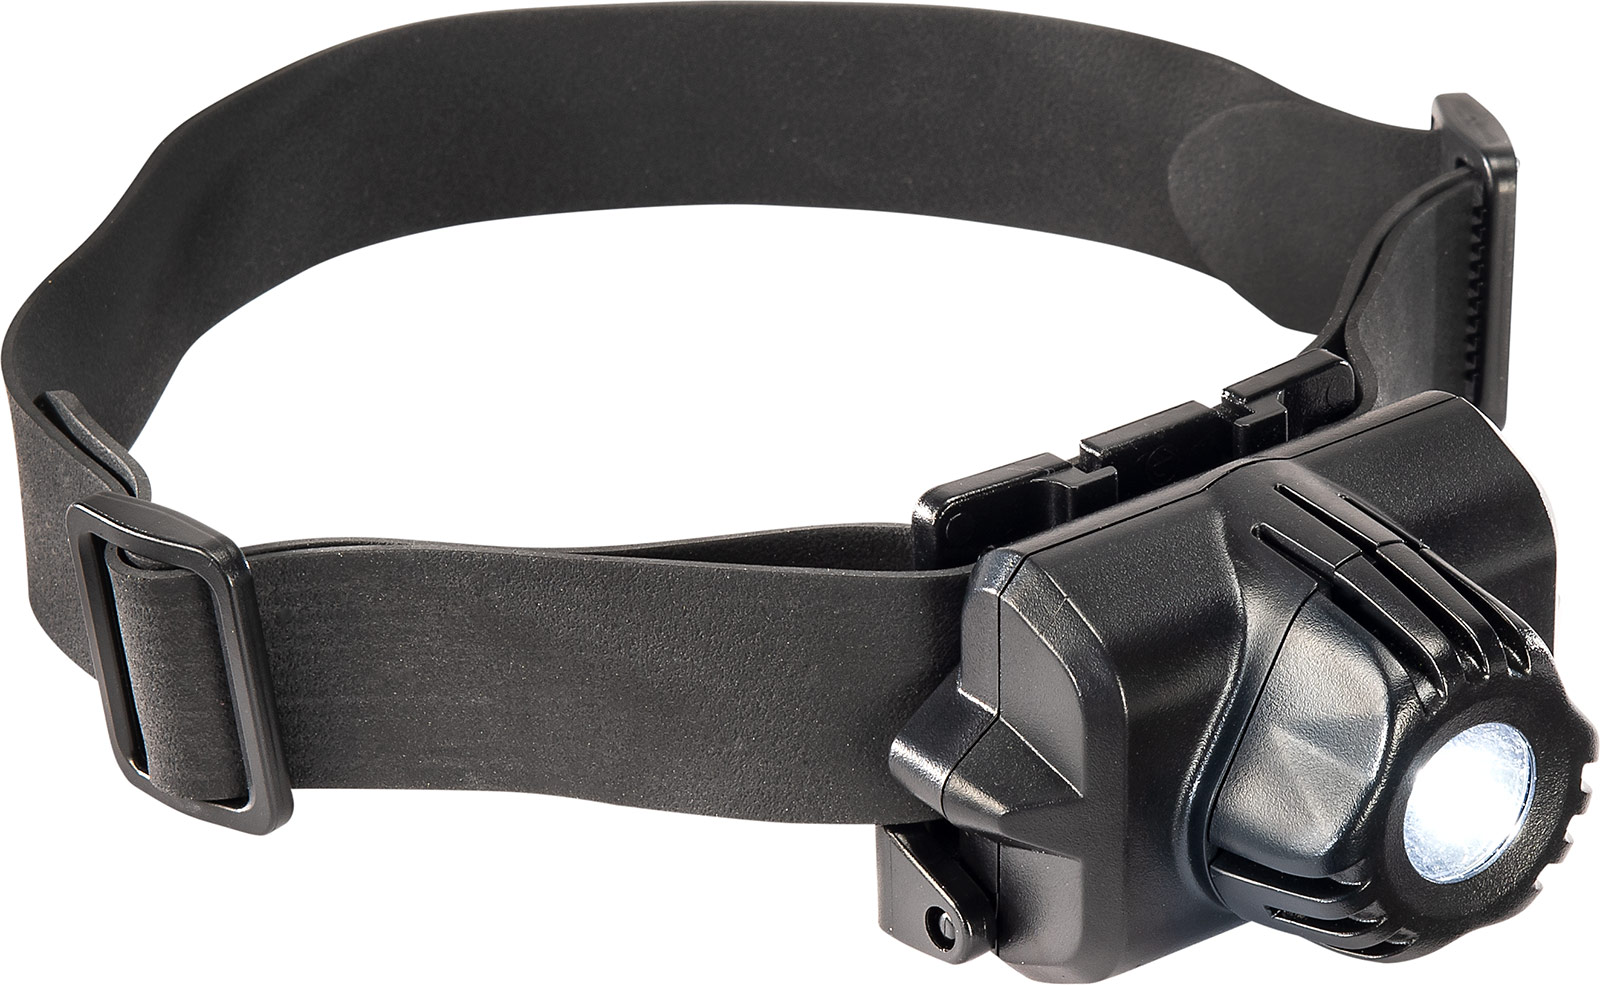 pelican 2690 rubber strap headlamp